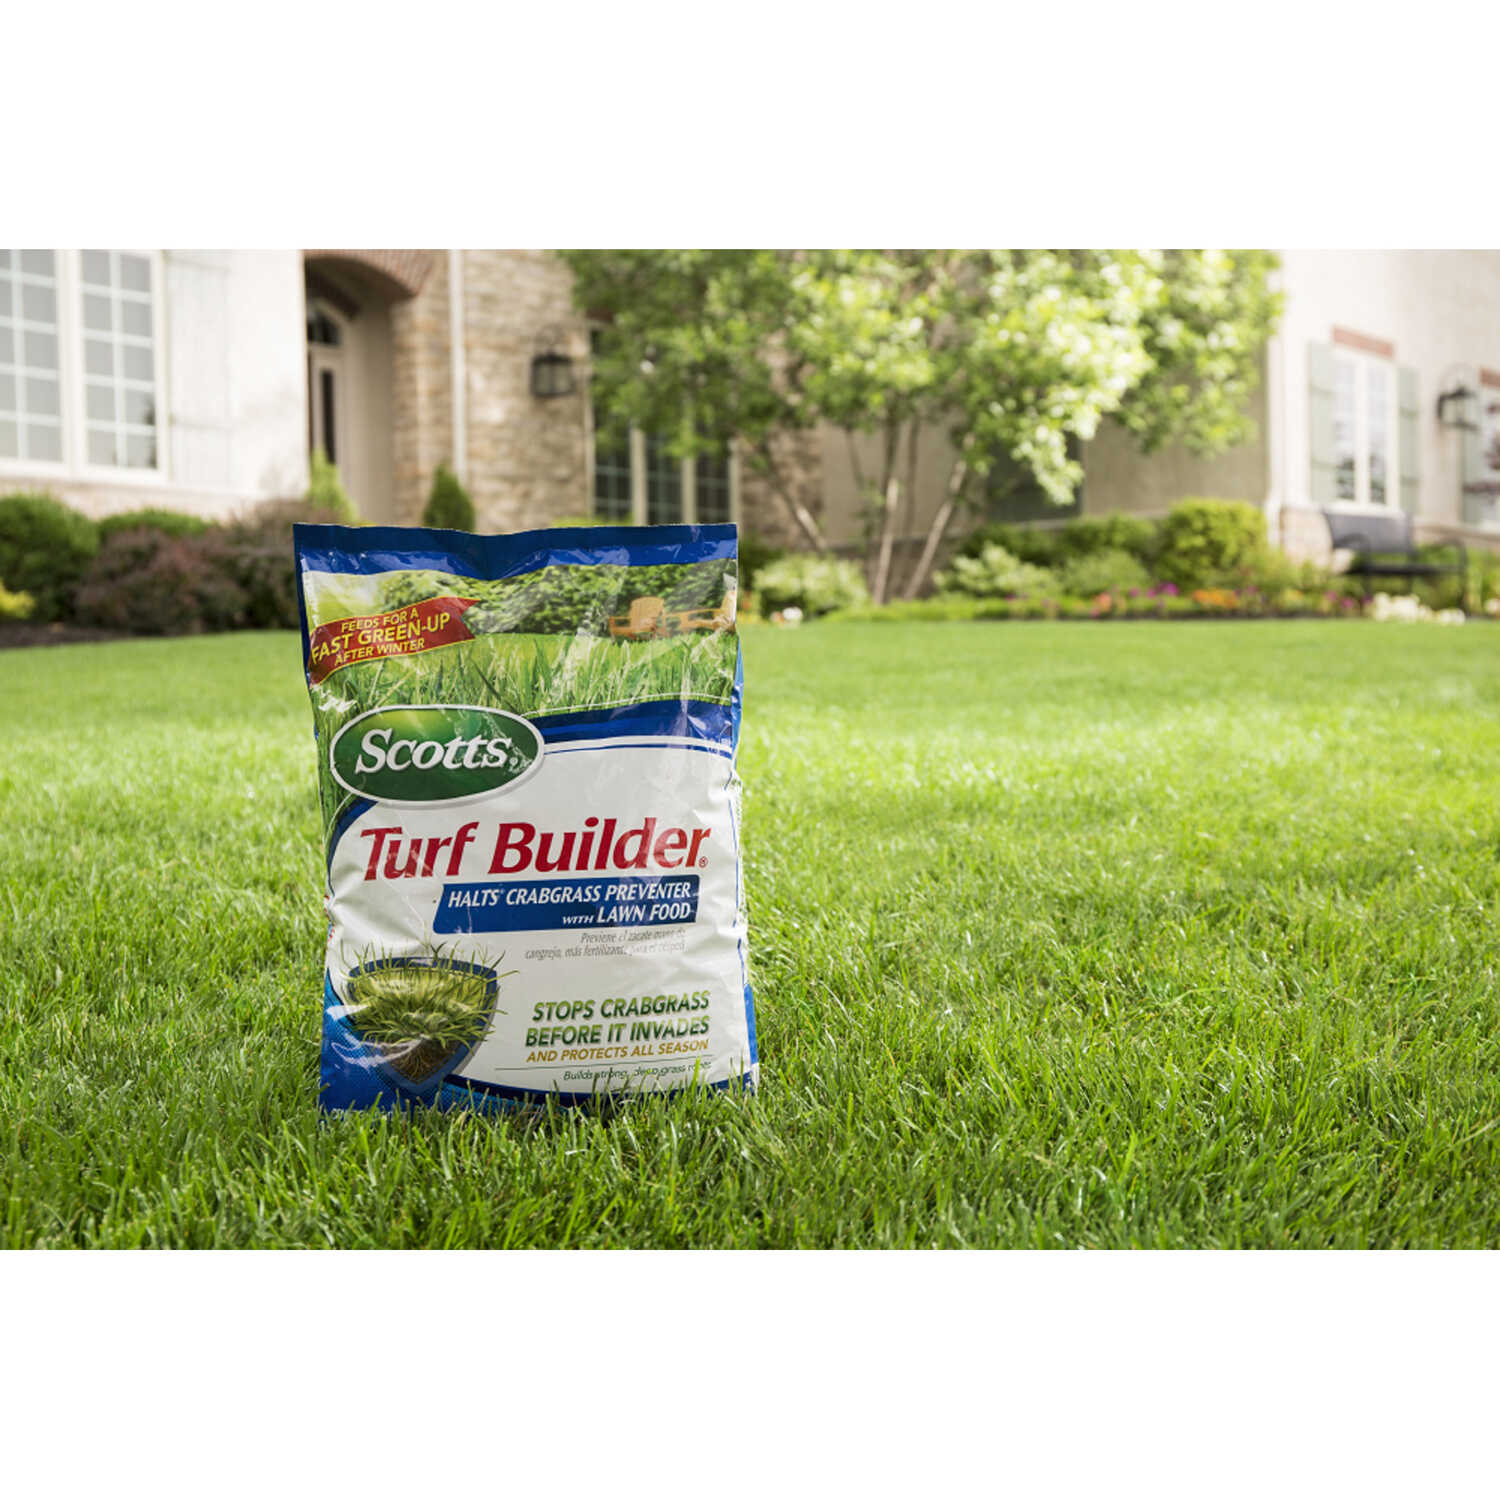 Scotts  Turf Builder  30-0-4  Crabgrass Preventer with Fertilizer  For All Grass Types 40.05 lb. 150